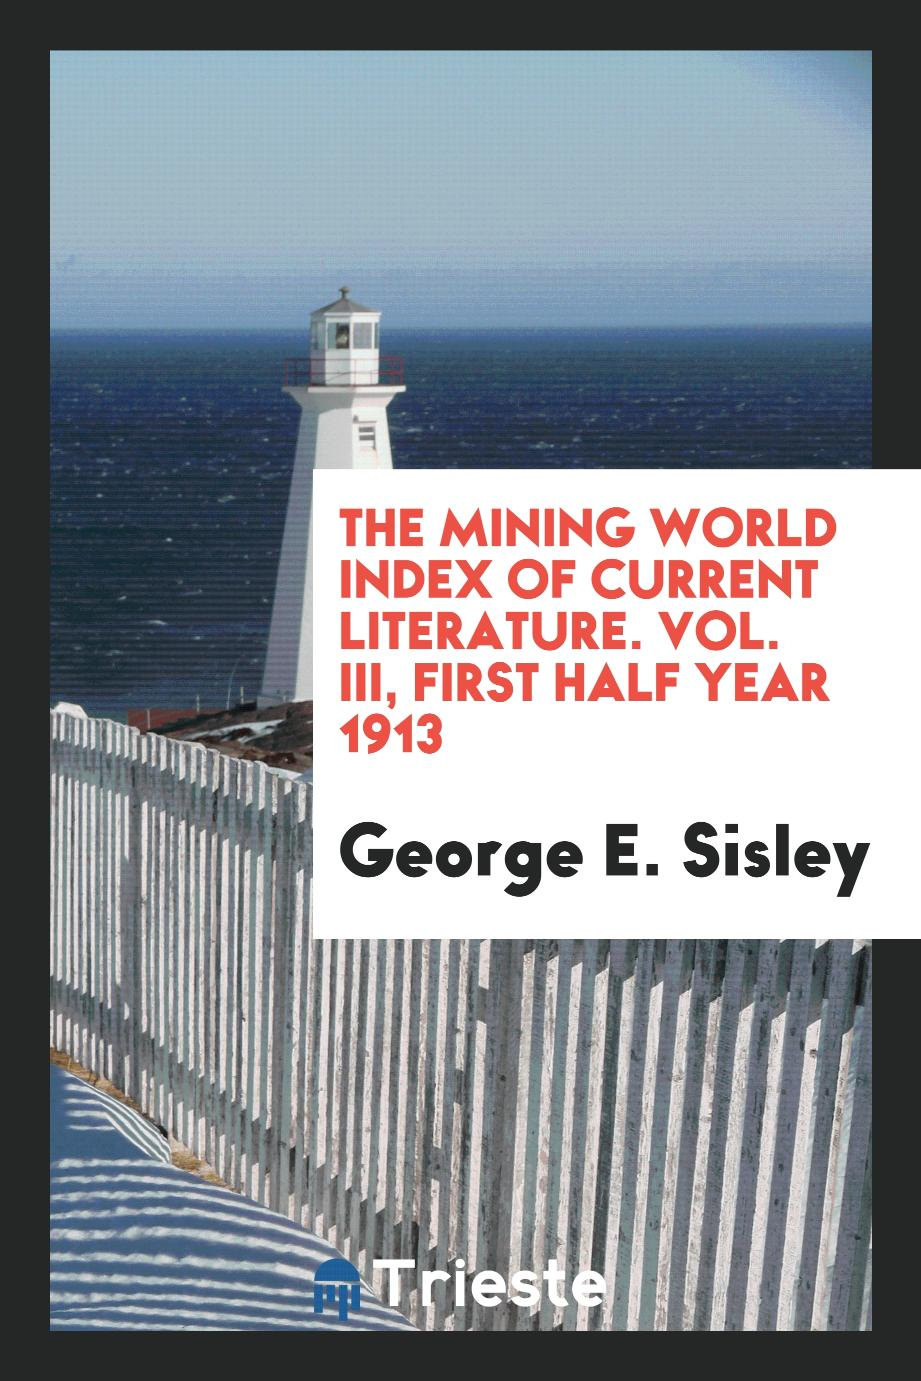 The Mining World Index of Current Literature. Vol. III, First Half Year 1913